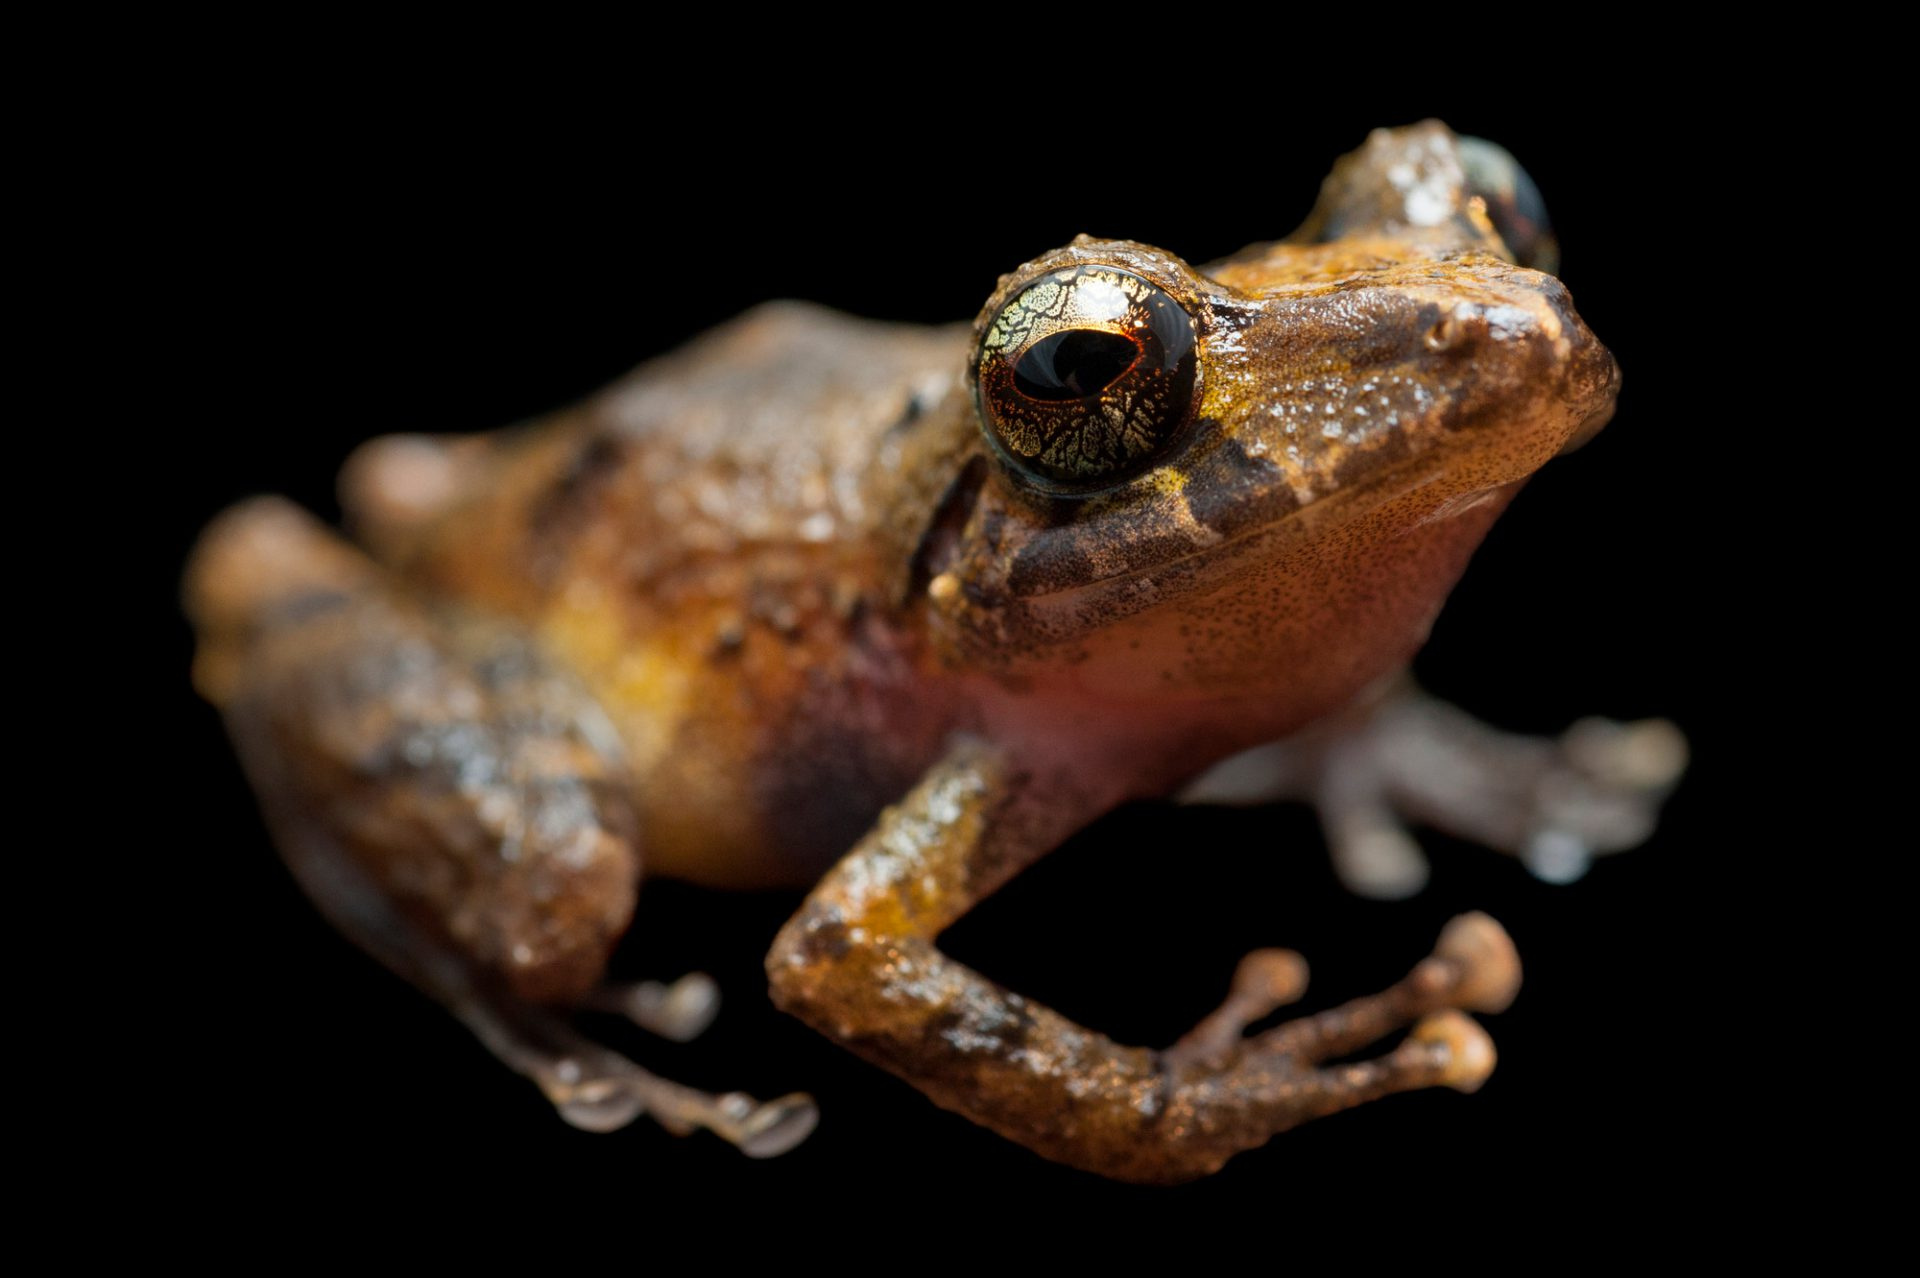 A robber frog (Pristimantis species) near Limon, Ecuador.